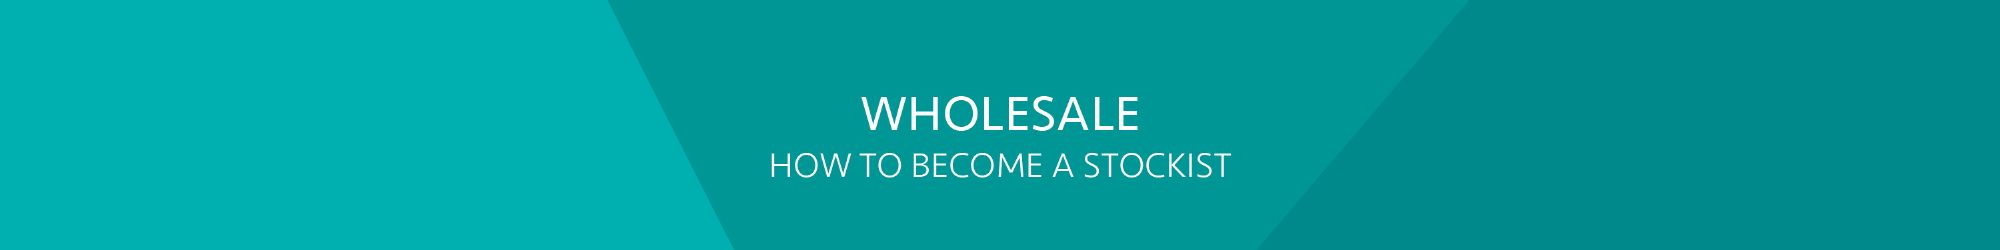 How to Become a Stockist